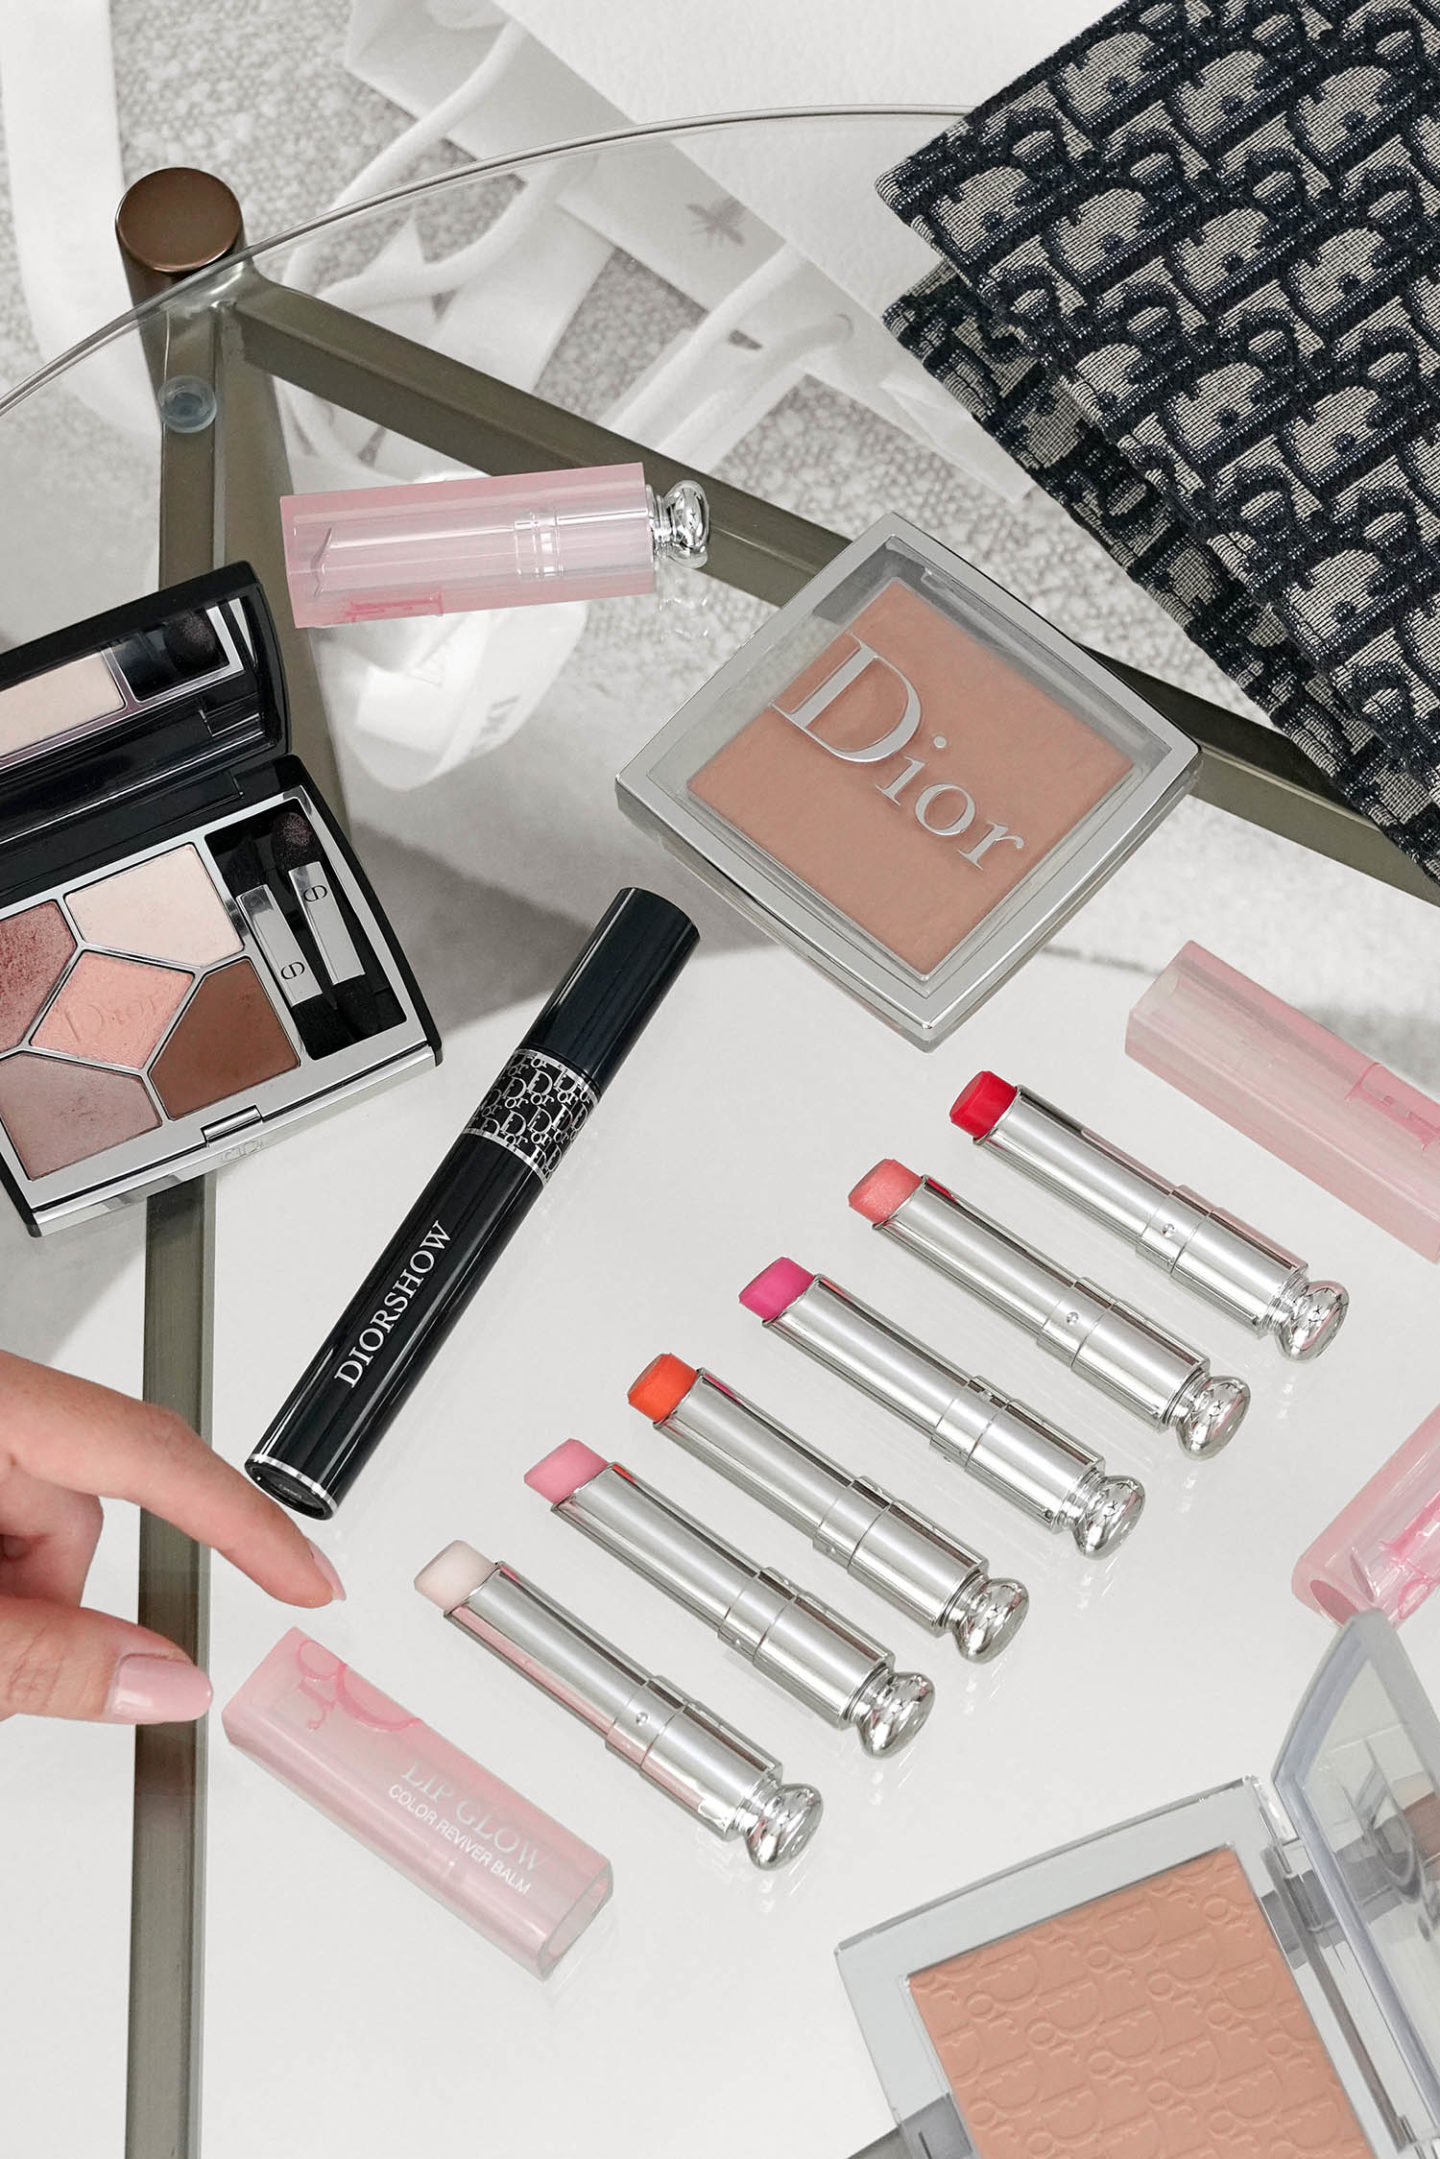 Dior Lip Glow Review via The Beauty Look Book